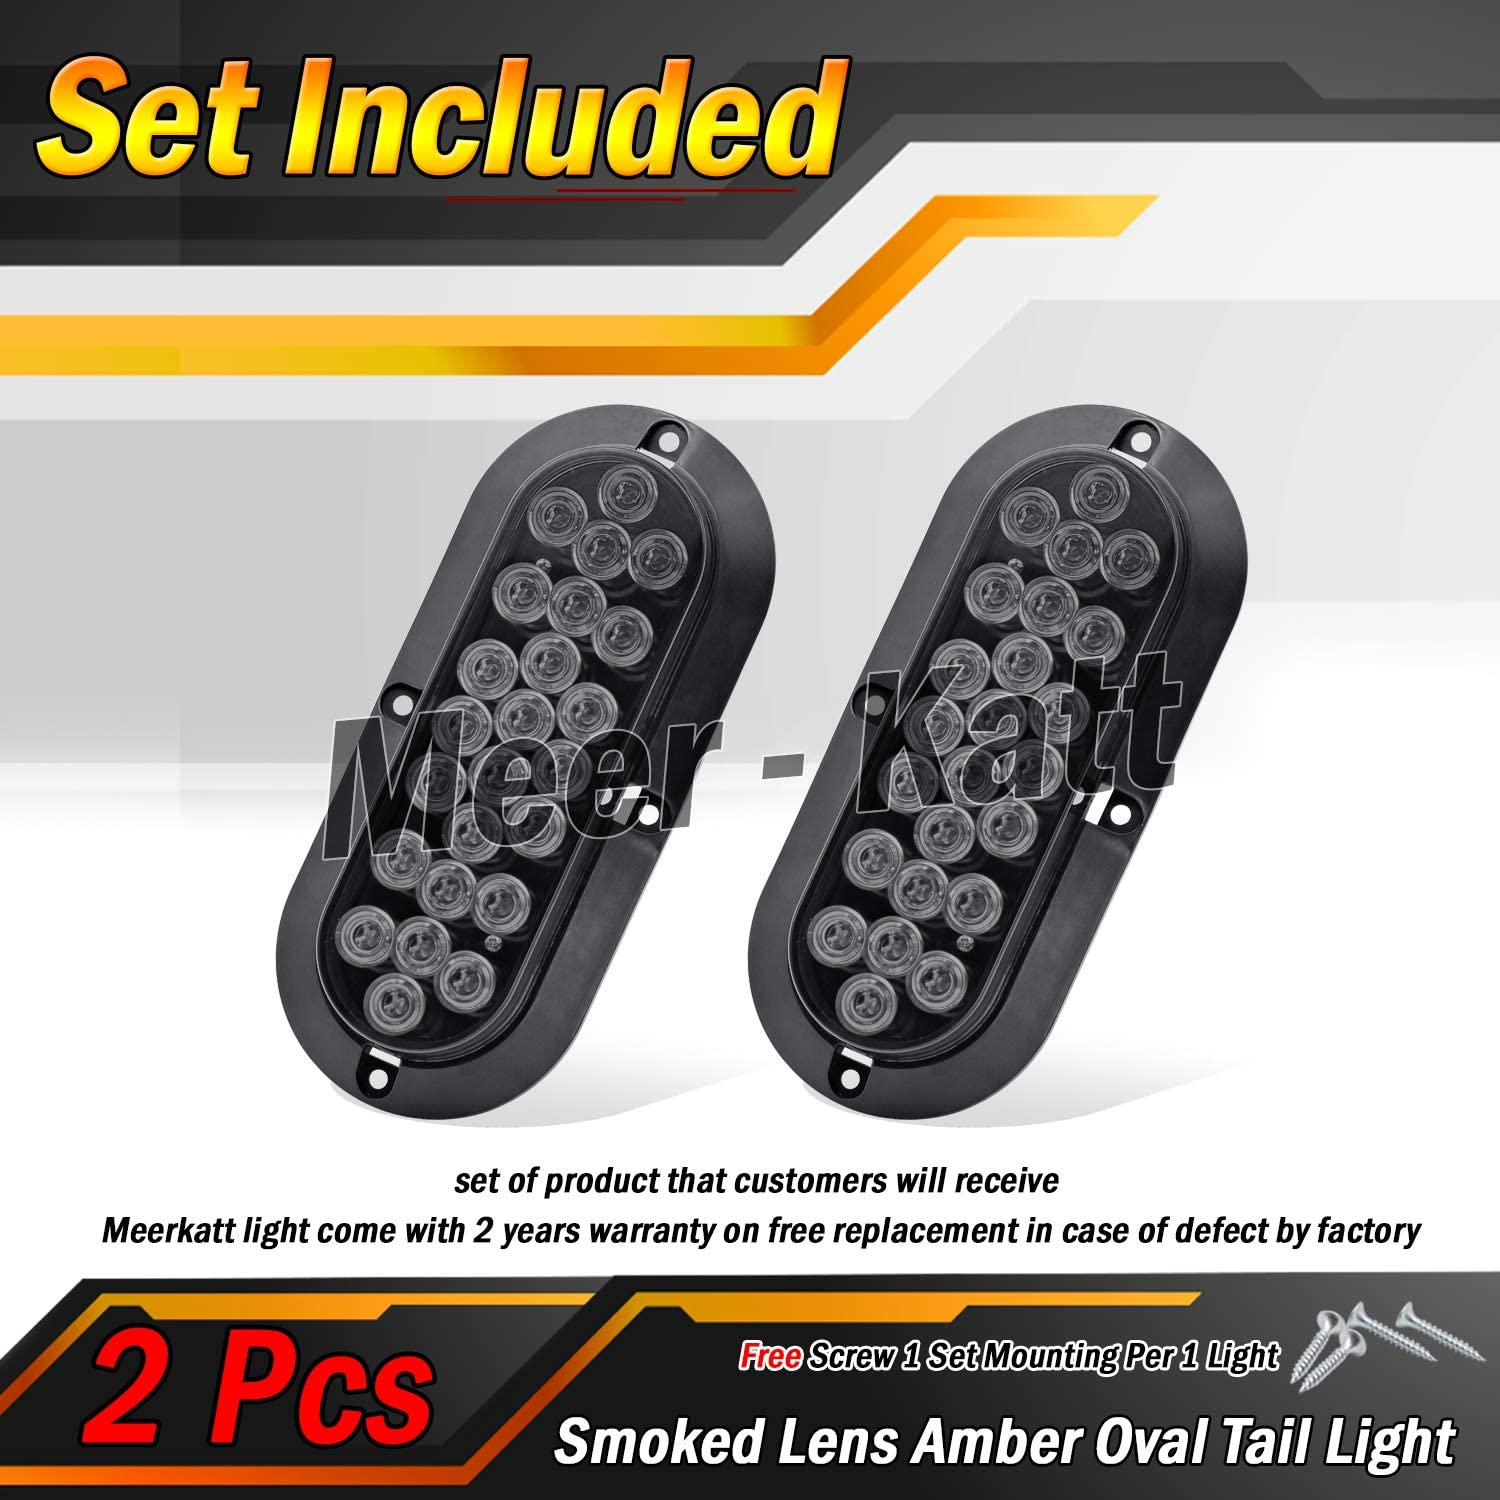 6 Inch Oval Smoked Lens 4 Red Pack of 6 Meerkatt 2 White LED Trailer Marker Tail Light Utility Bulb Exterior Brake Turn Rear Lamp Cabin Car Lorry Pickup Tow Jeep Camper Truck 12V DC Universal DK12